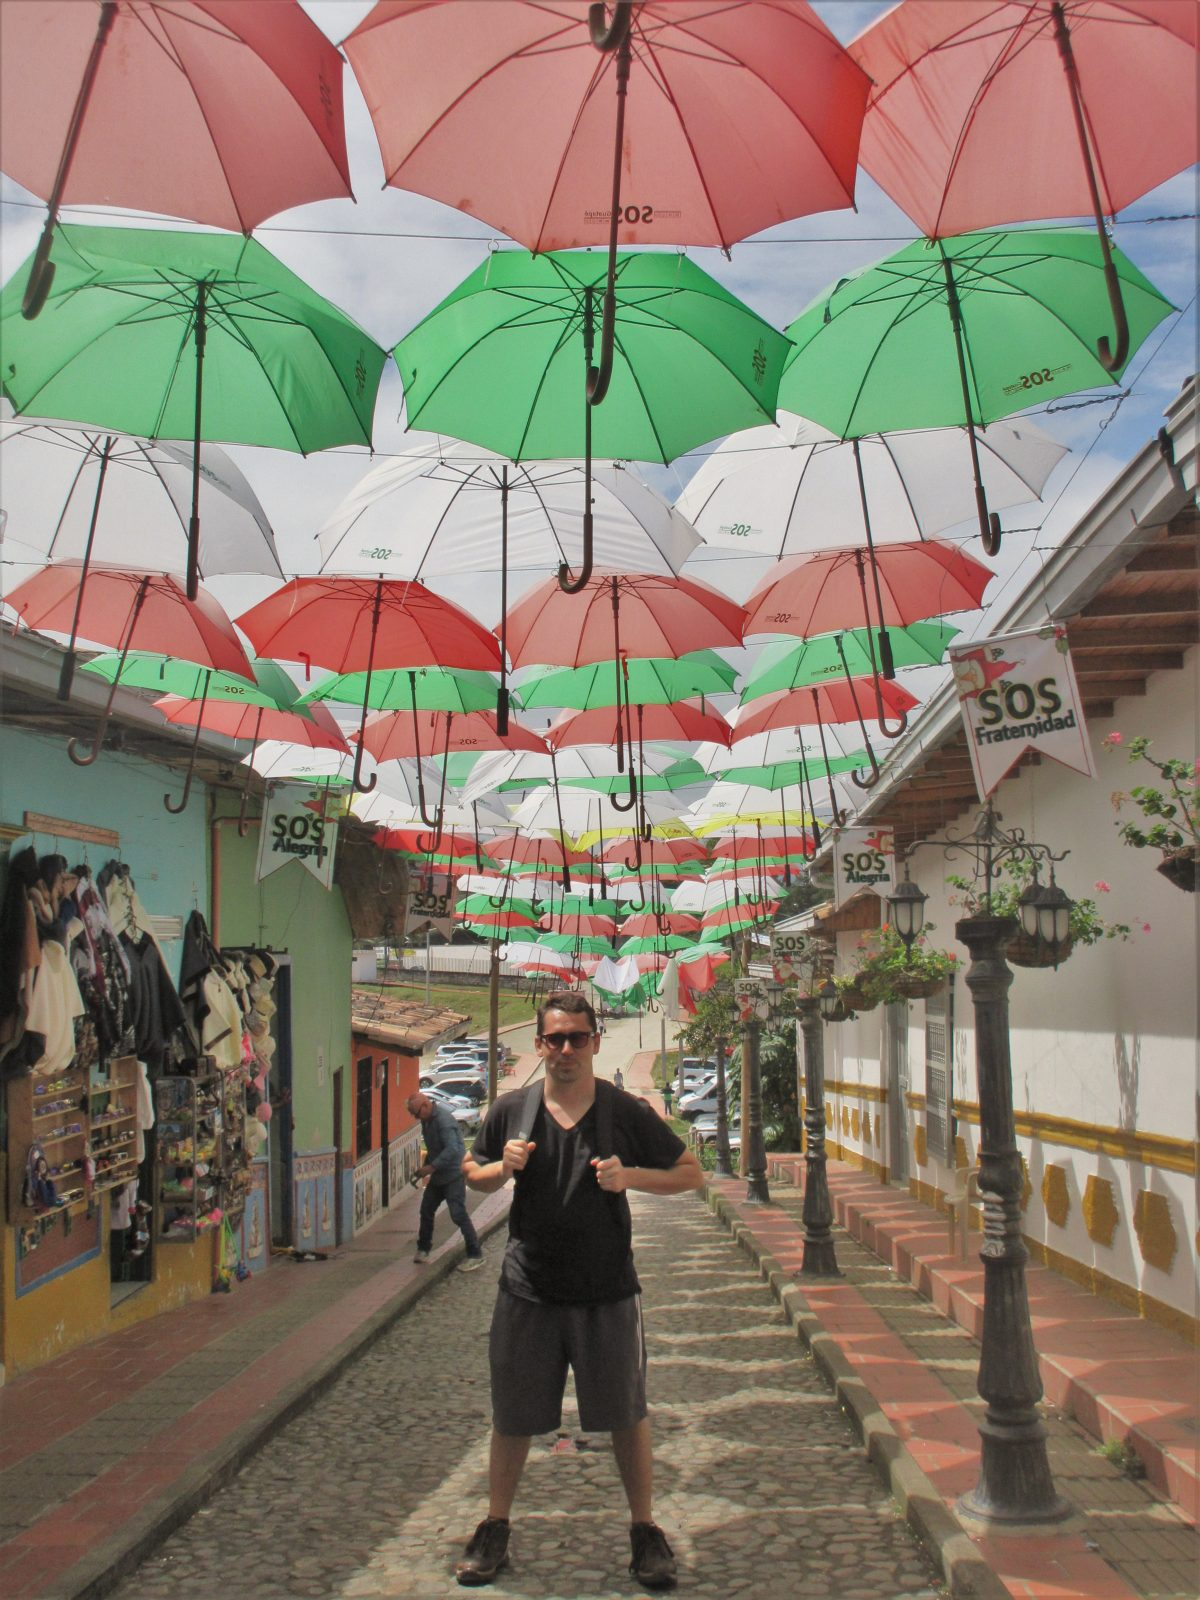 Travel Around Medellin: Daytrips and Places to Visit – Guatape, Santa Fe, El Carmen de Viboral